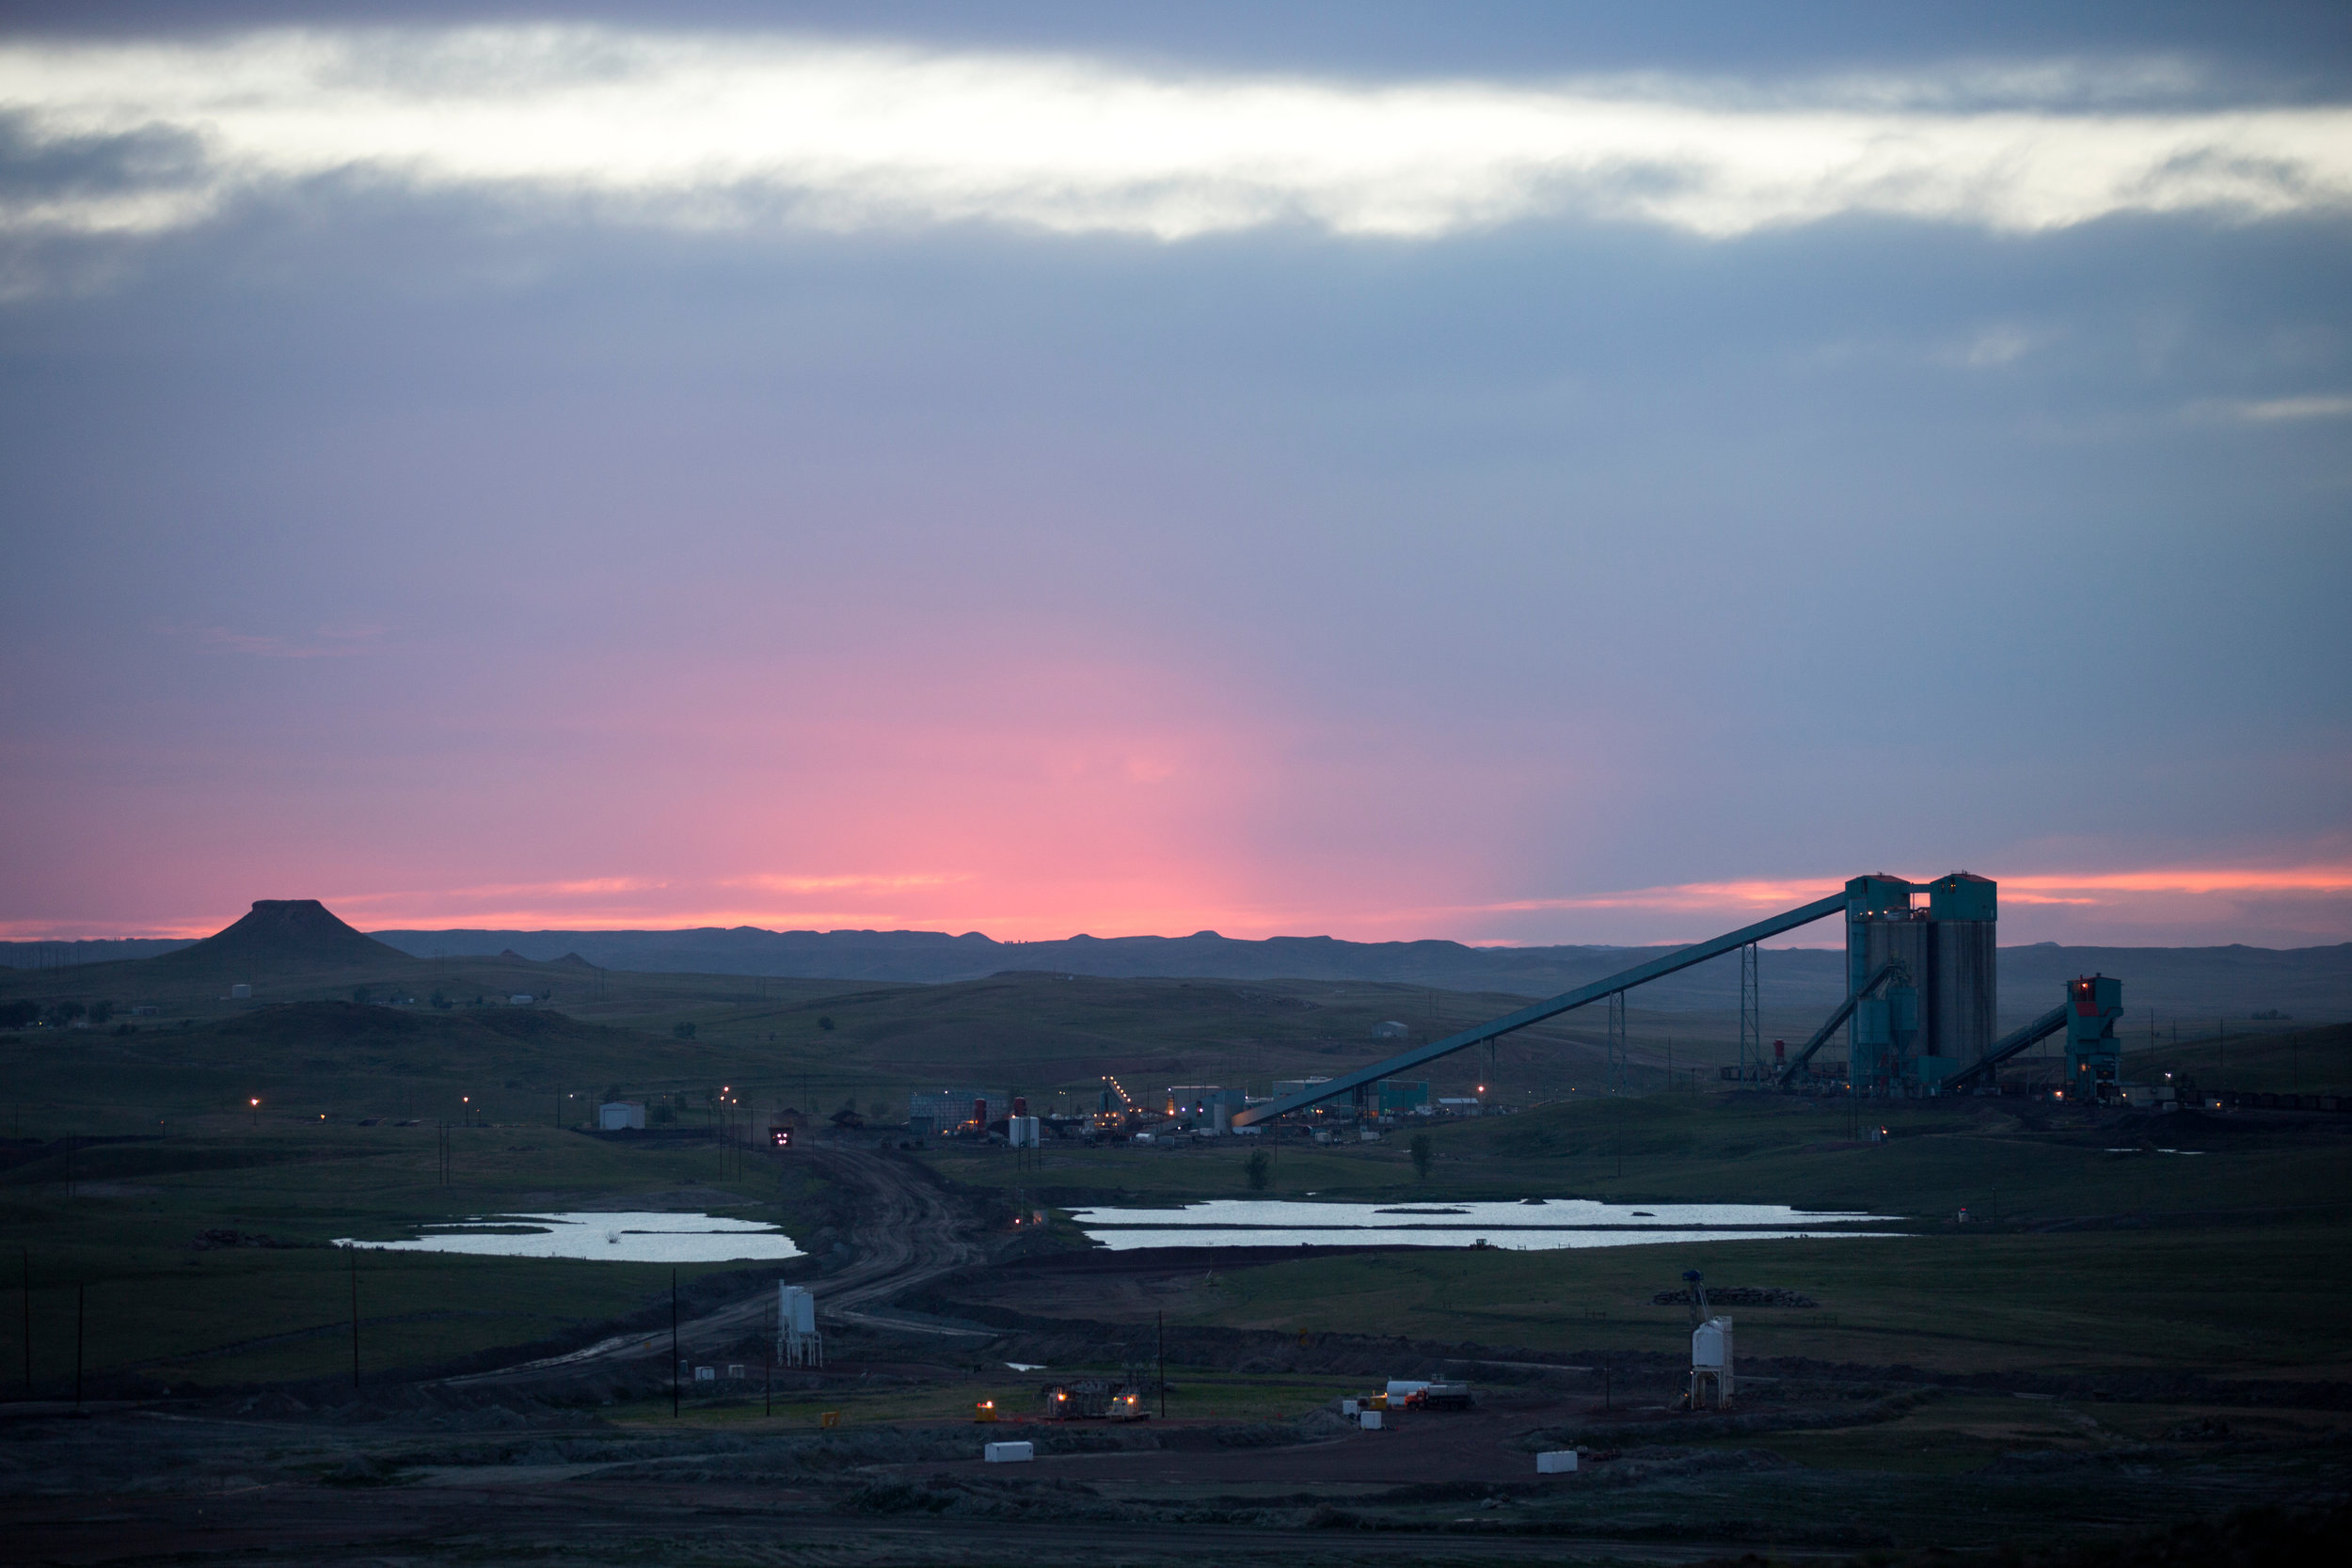 The sun sets over Eagle Butte coal mine as seen outside Gillette, Wyoming, Friday, June 10, 2016. The mine, operated by Alpha Coal West, Inc., is one of about a dozen mines in the Gillette, Wyoming area. Alpha Natural Resources, Inc., filed for bankruptcy in August 2015. (Kristina Barker for The New York Times)